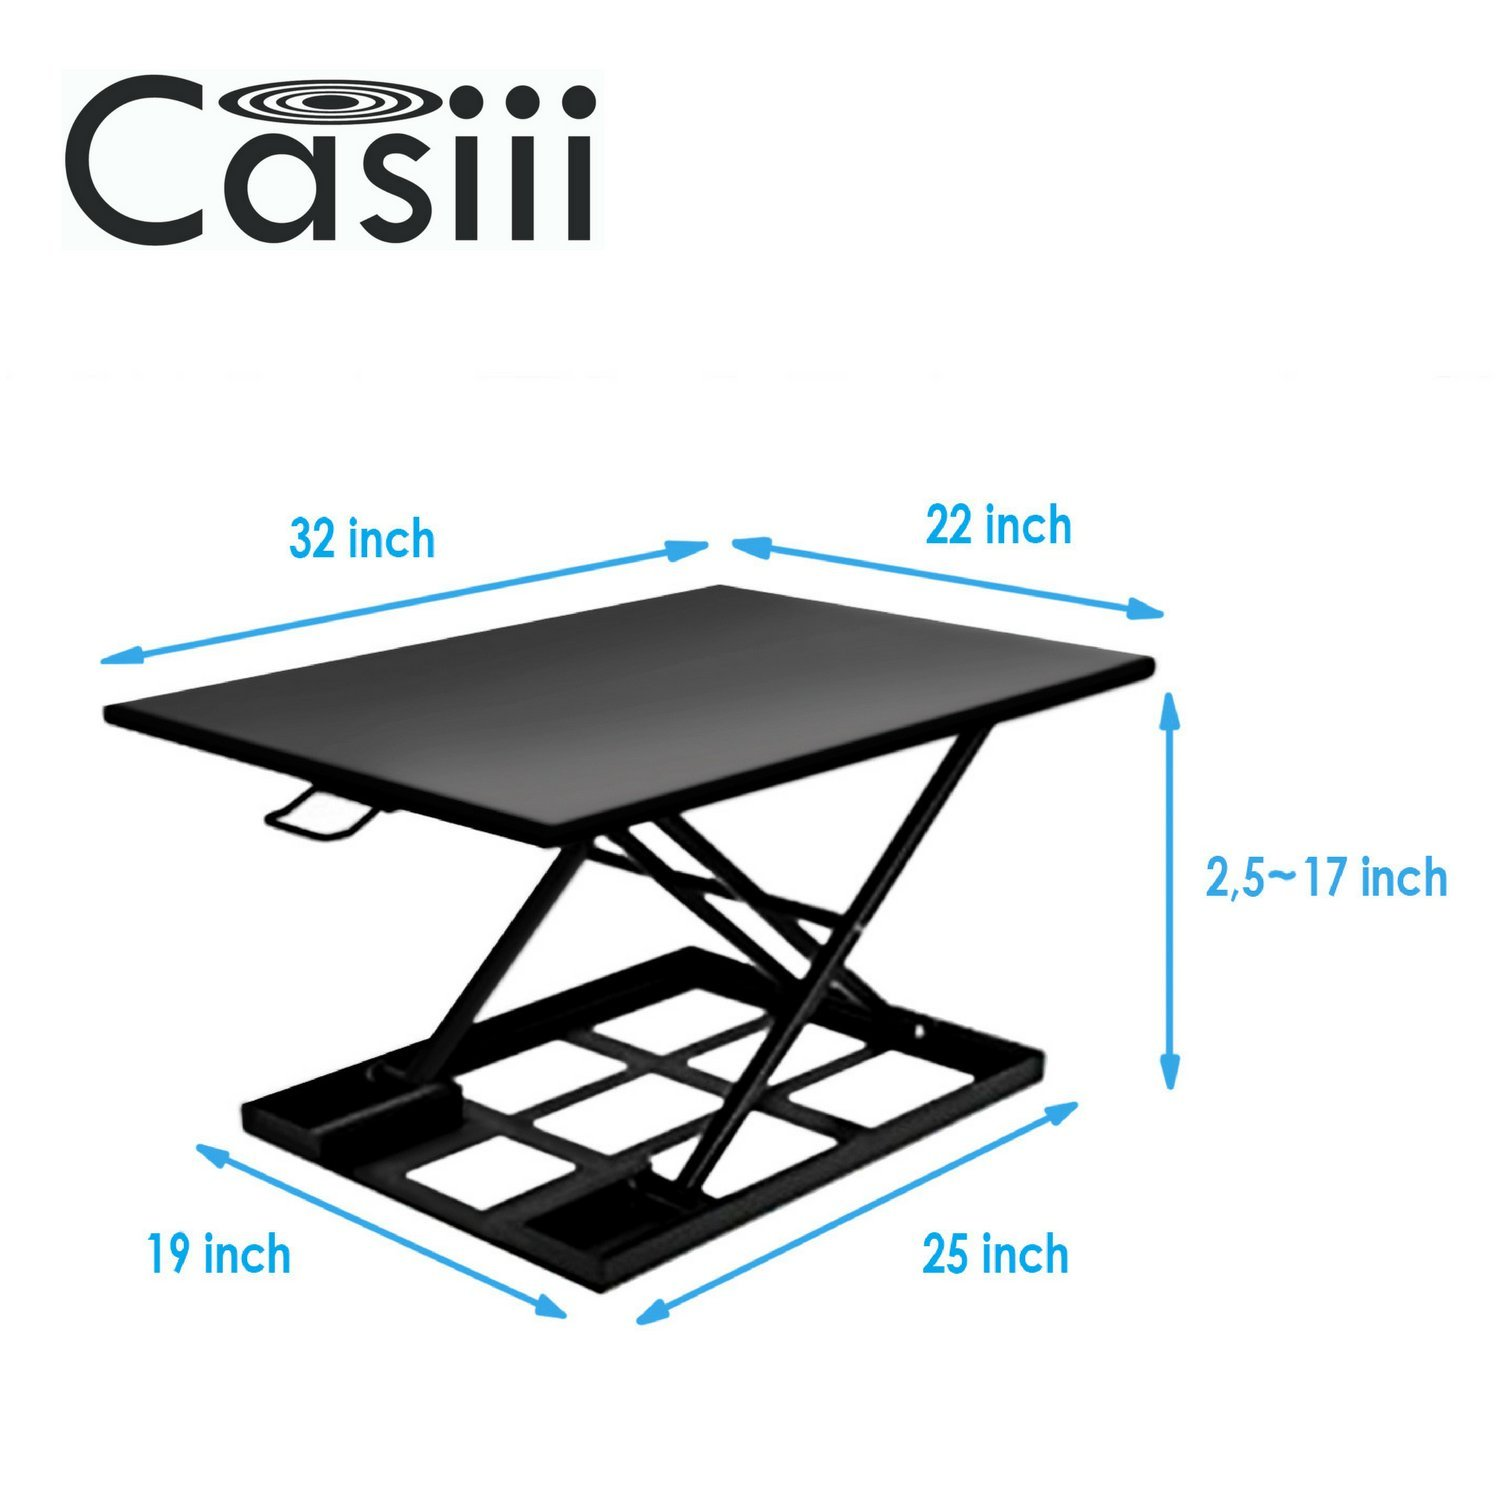 Best Standing Desk, Adjustable Height Riser Converter, Stand Up or Sit Down, 32'' Black Office Desktop, Computer Monitor & Laptop Workspace, Unlimited Ergonomic Positions for Better Health, Casiii UP32 by Casiii (Image #5)